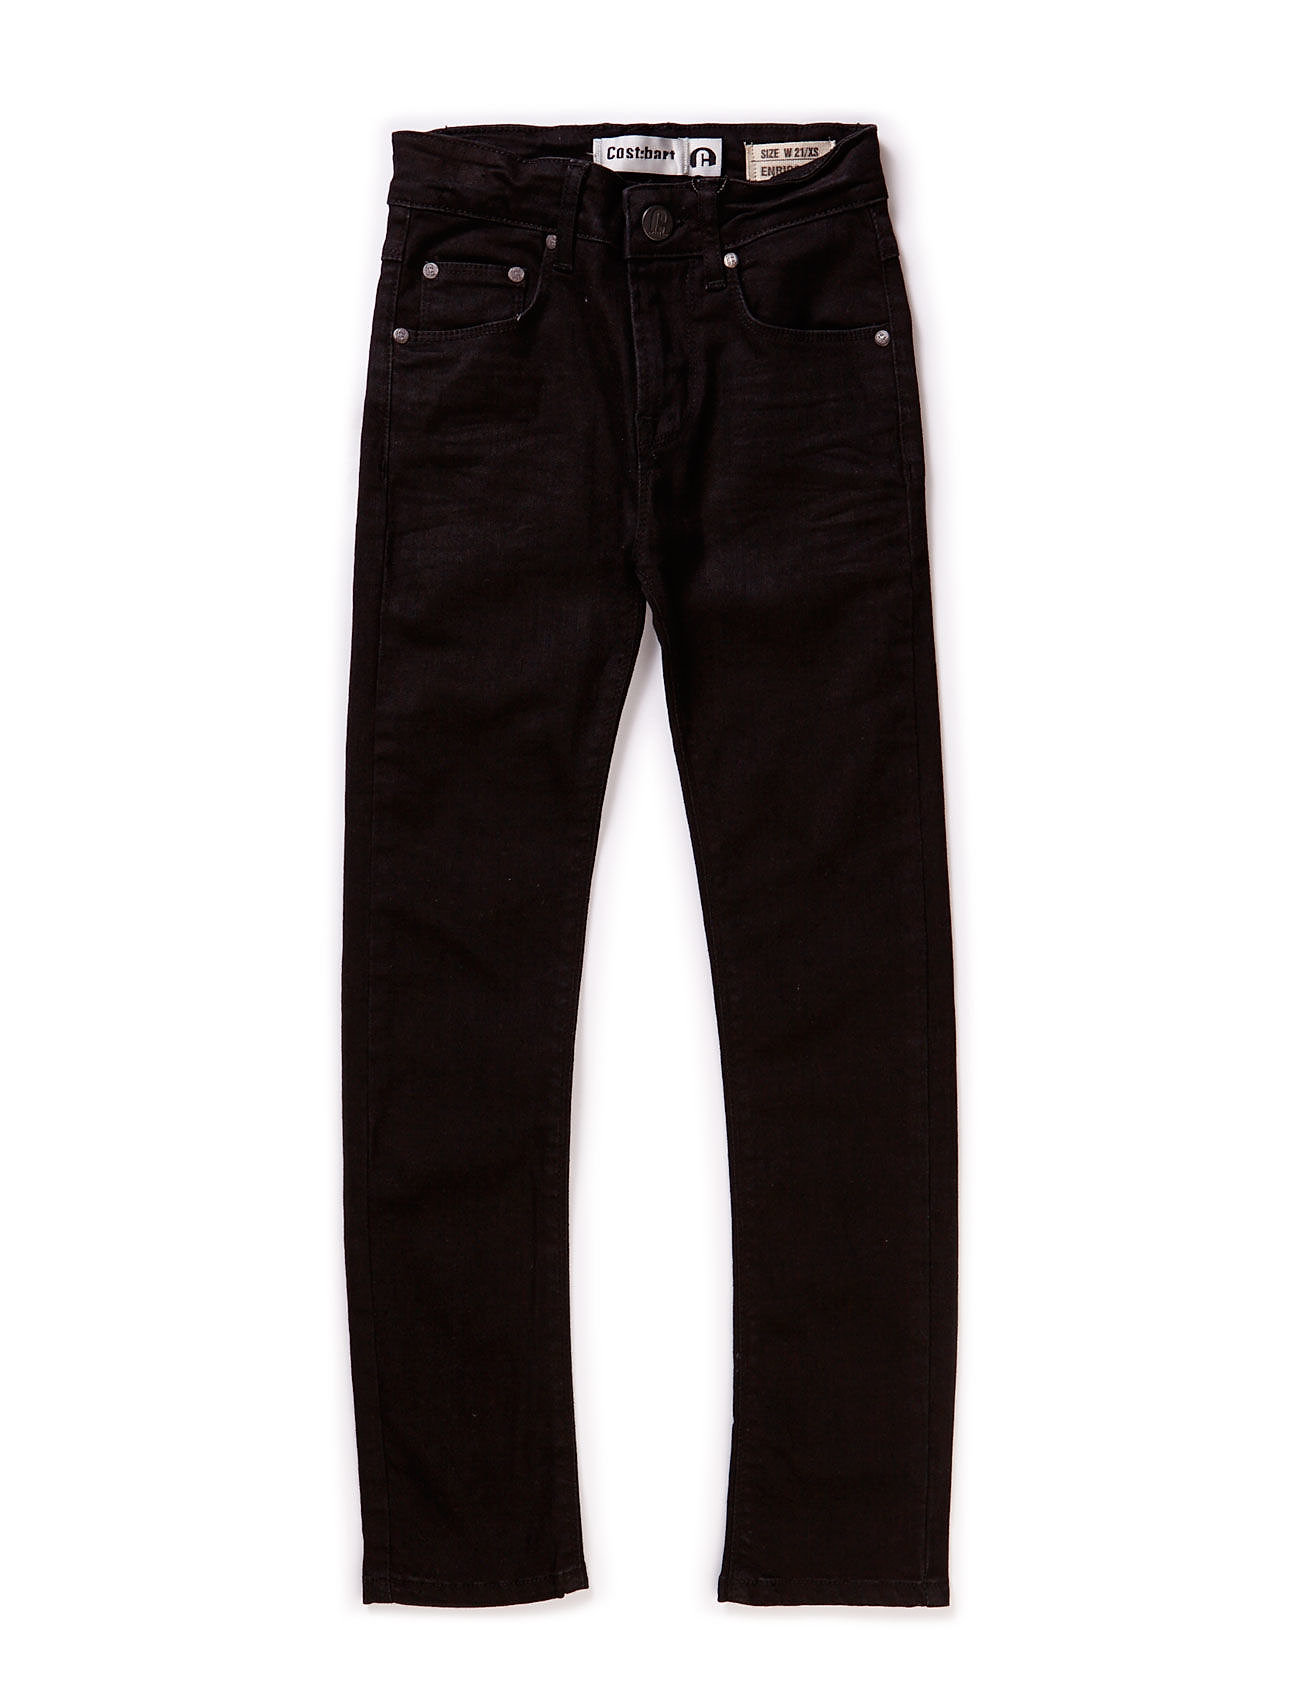 CostBart Enrico Jeans - 999-black